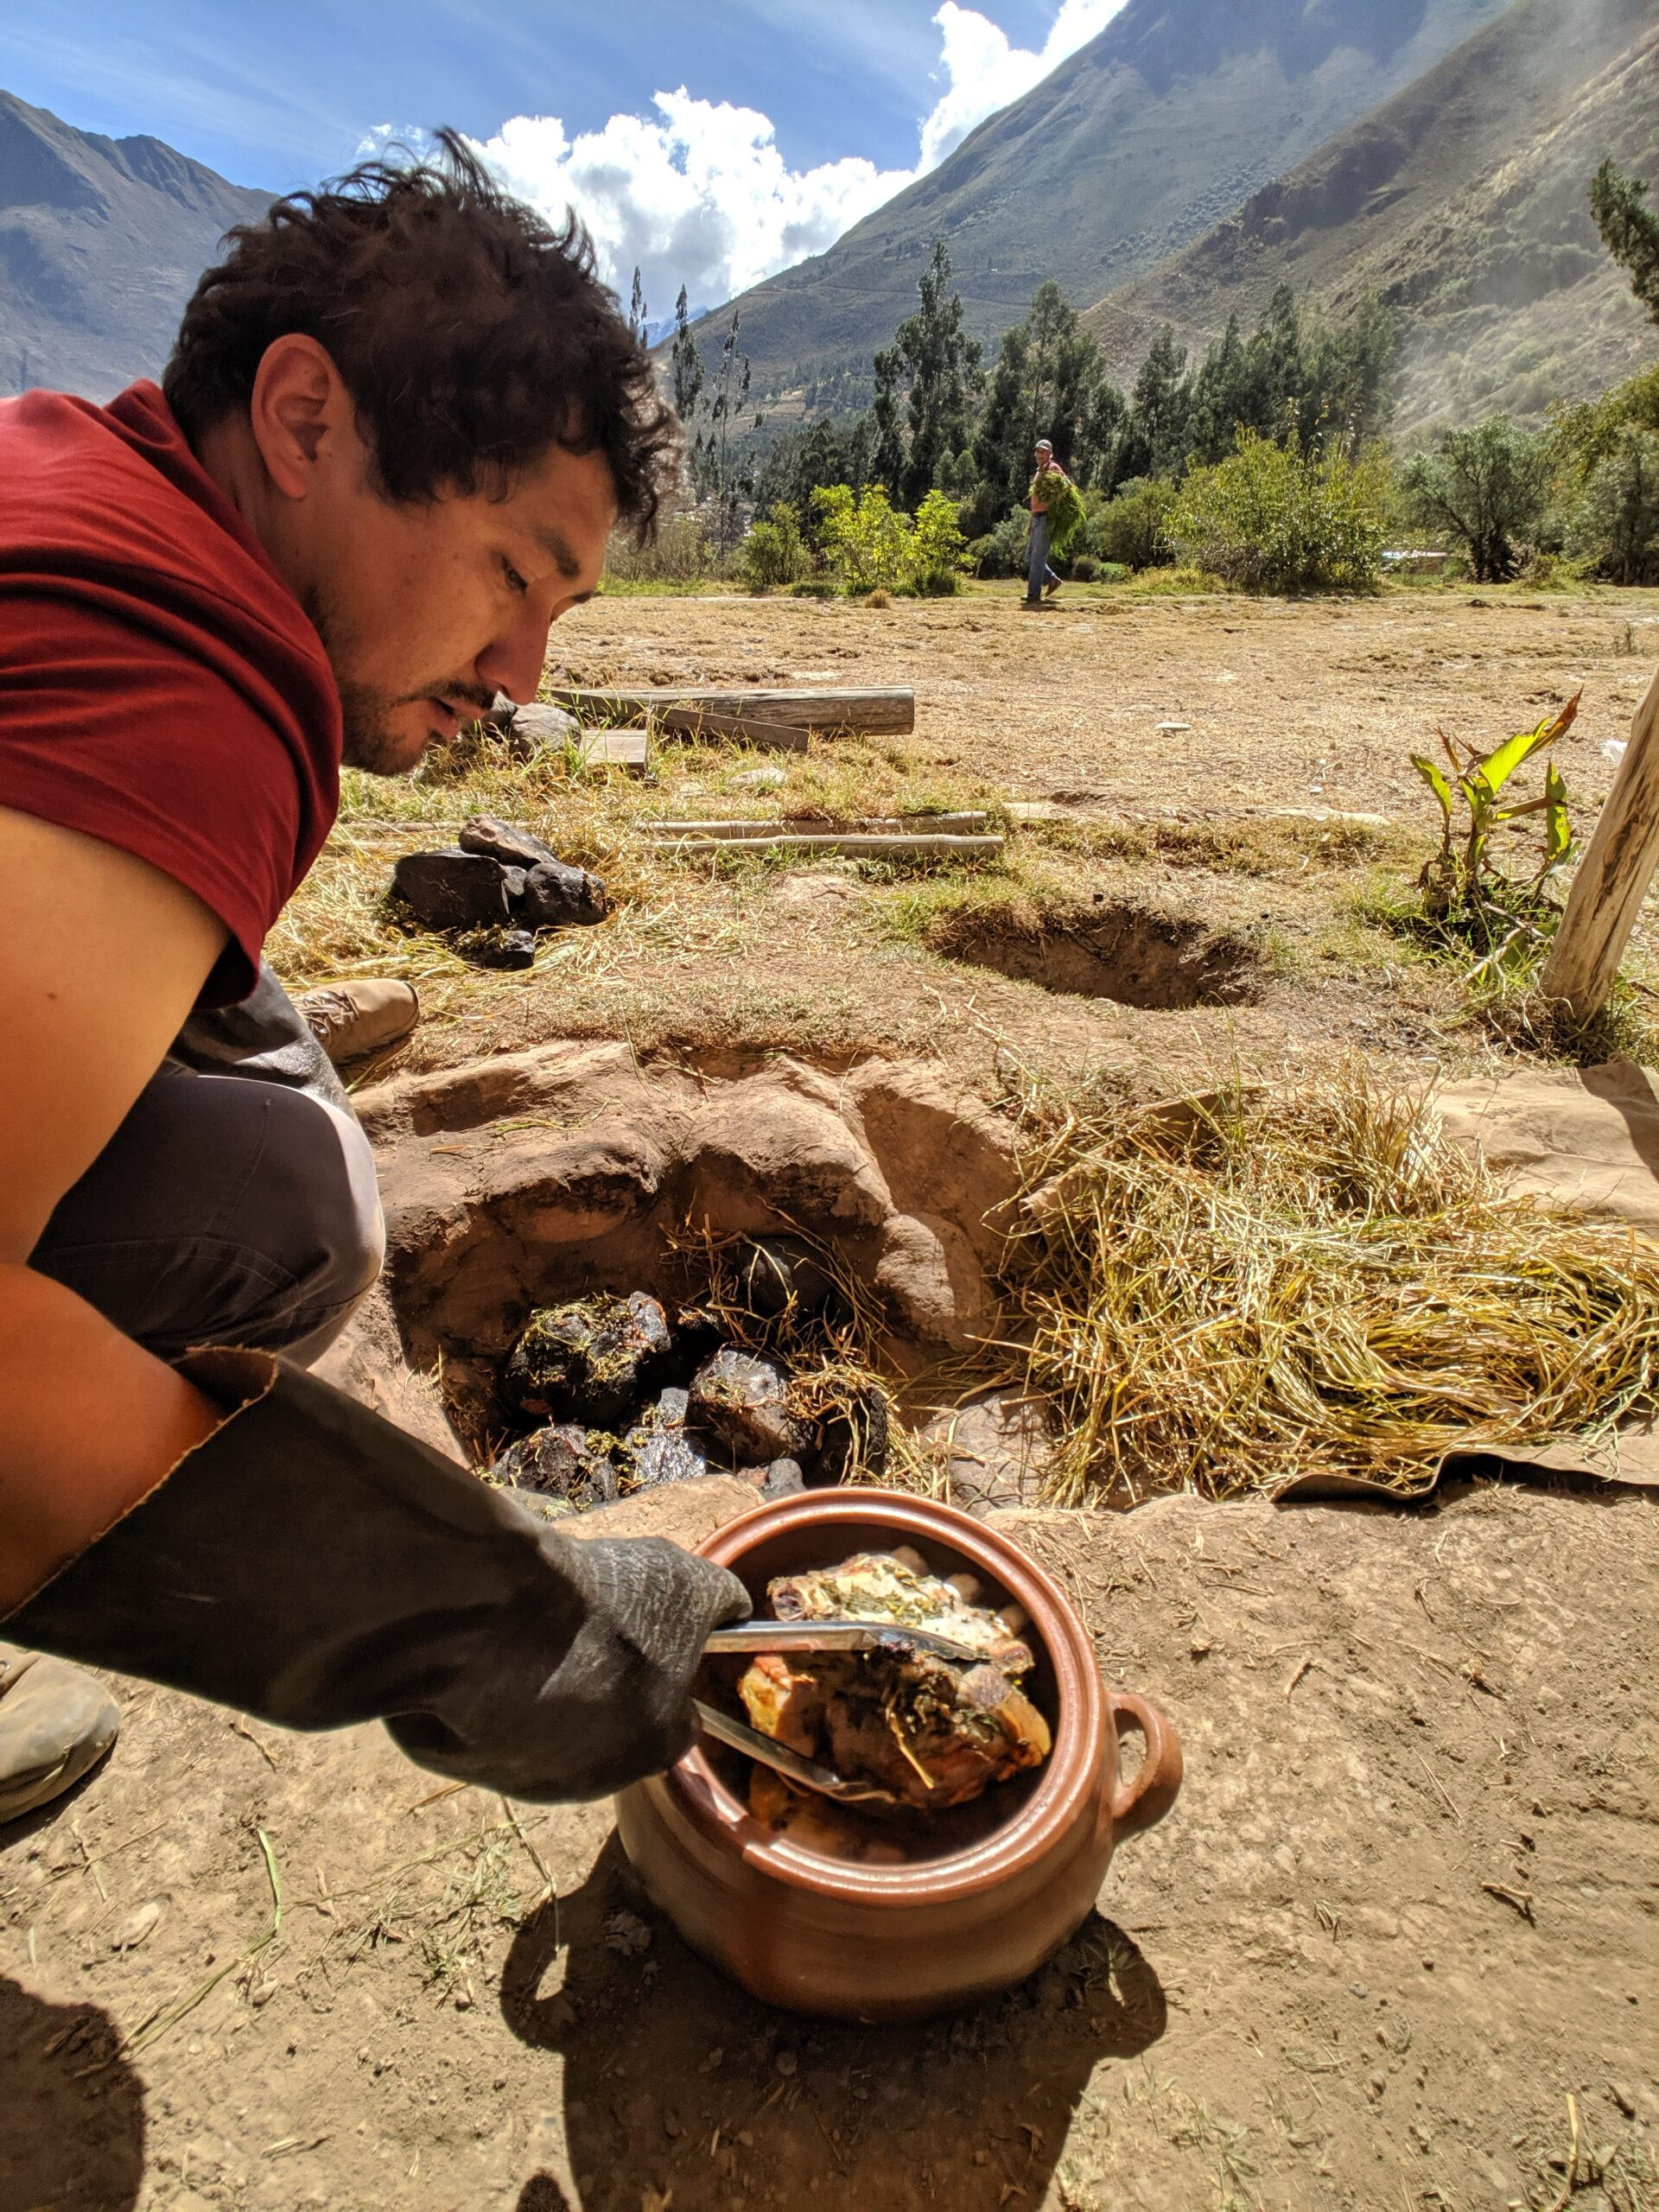 A man pulls meat from a clay oven in peru, photo taken with consent.